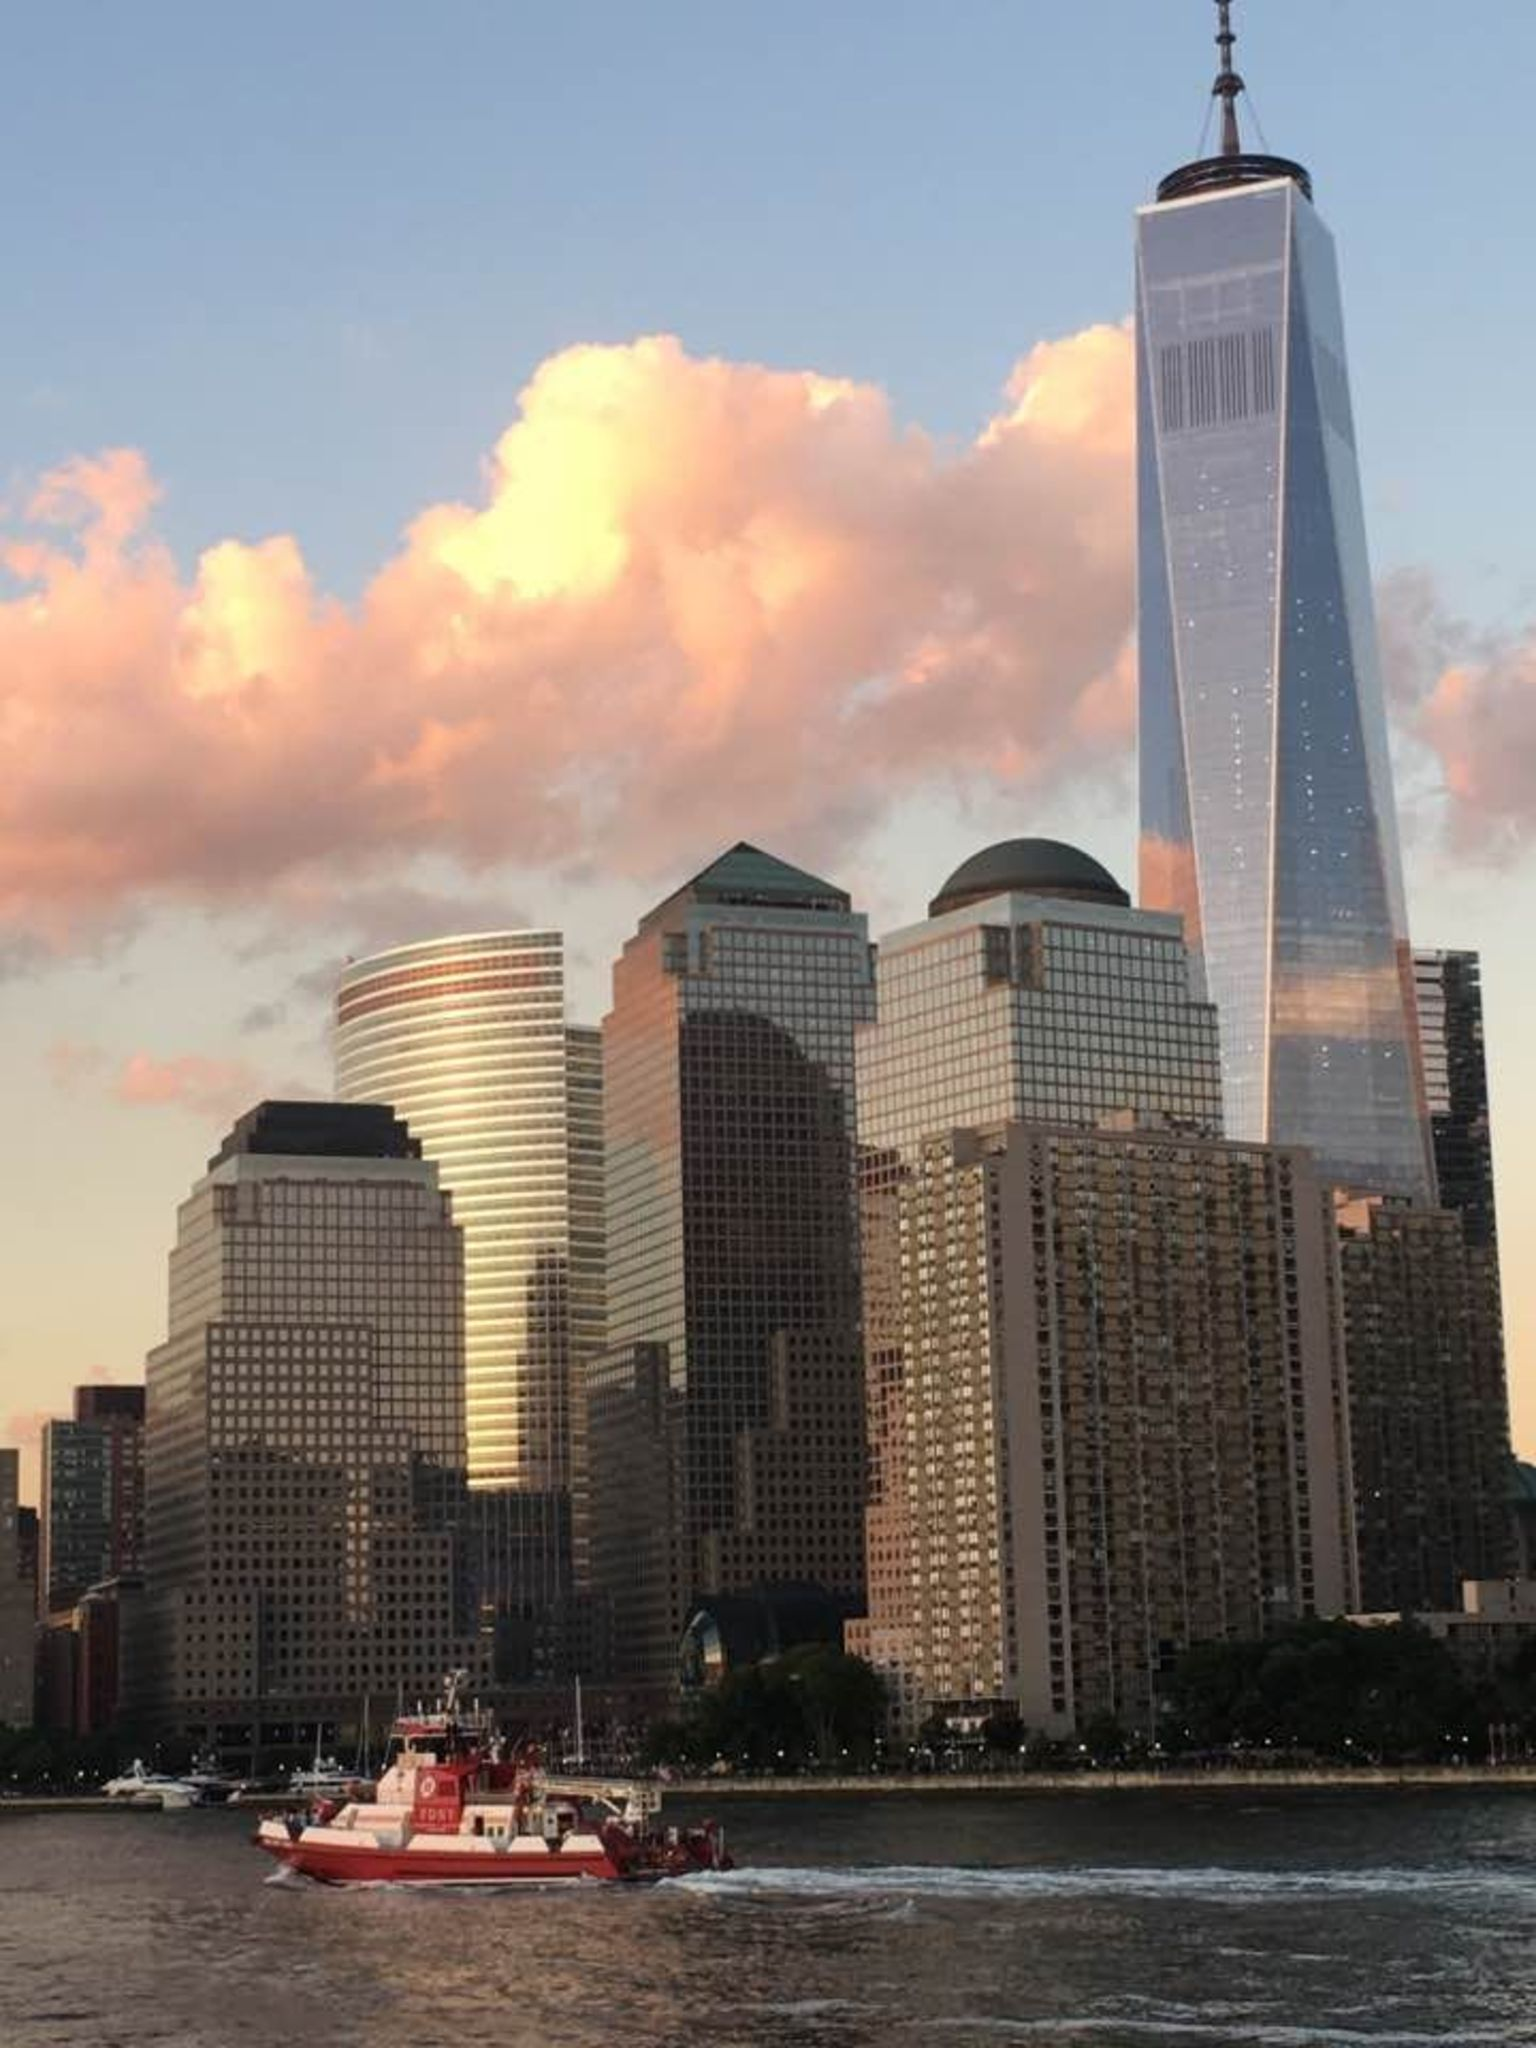 View of the new World Trade tower